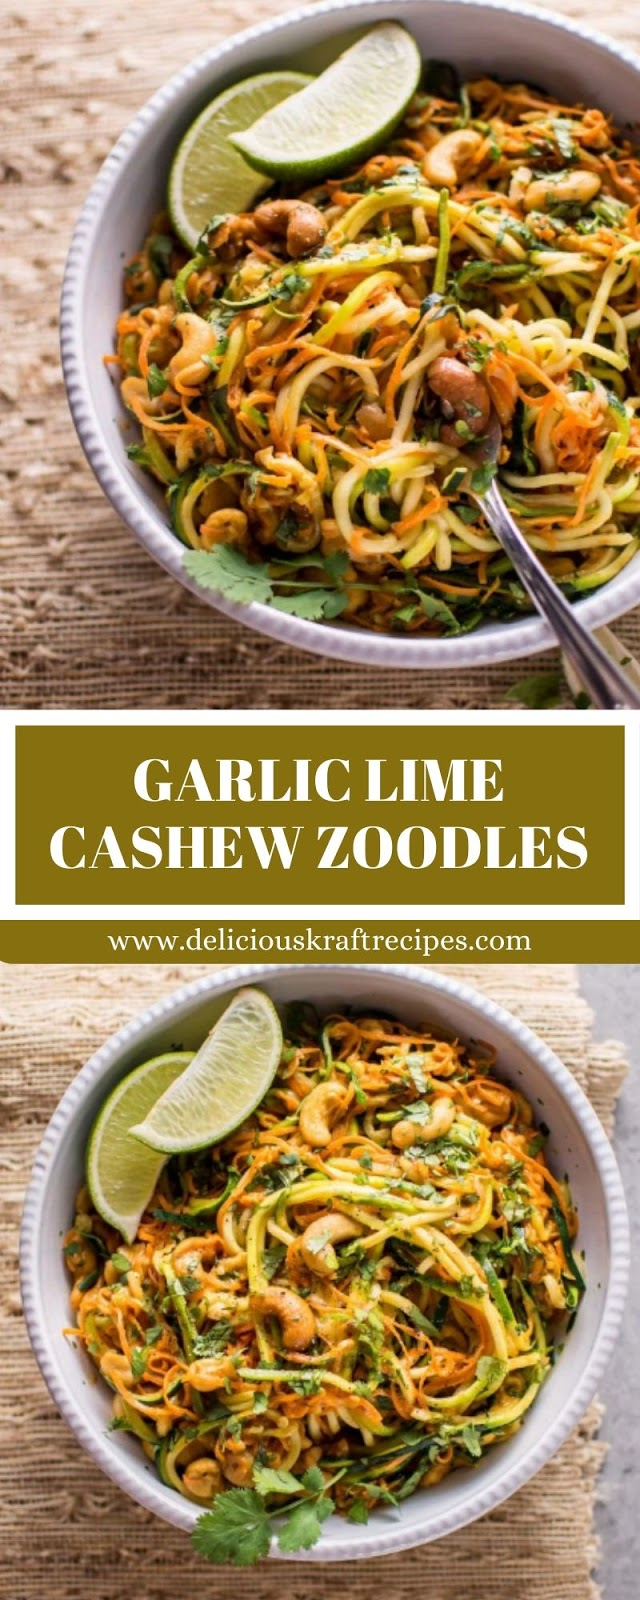 GARLIC LIME CASHEW ZOODLES